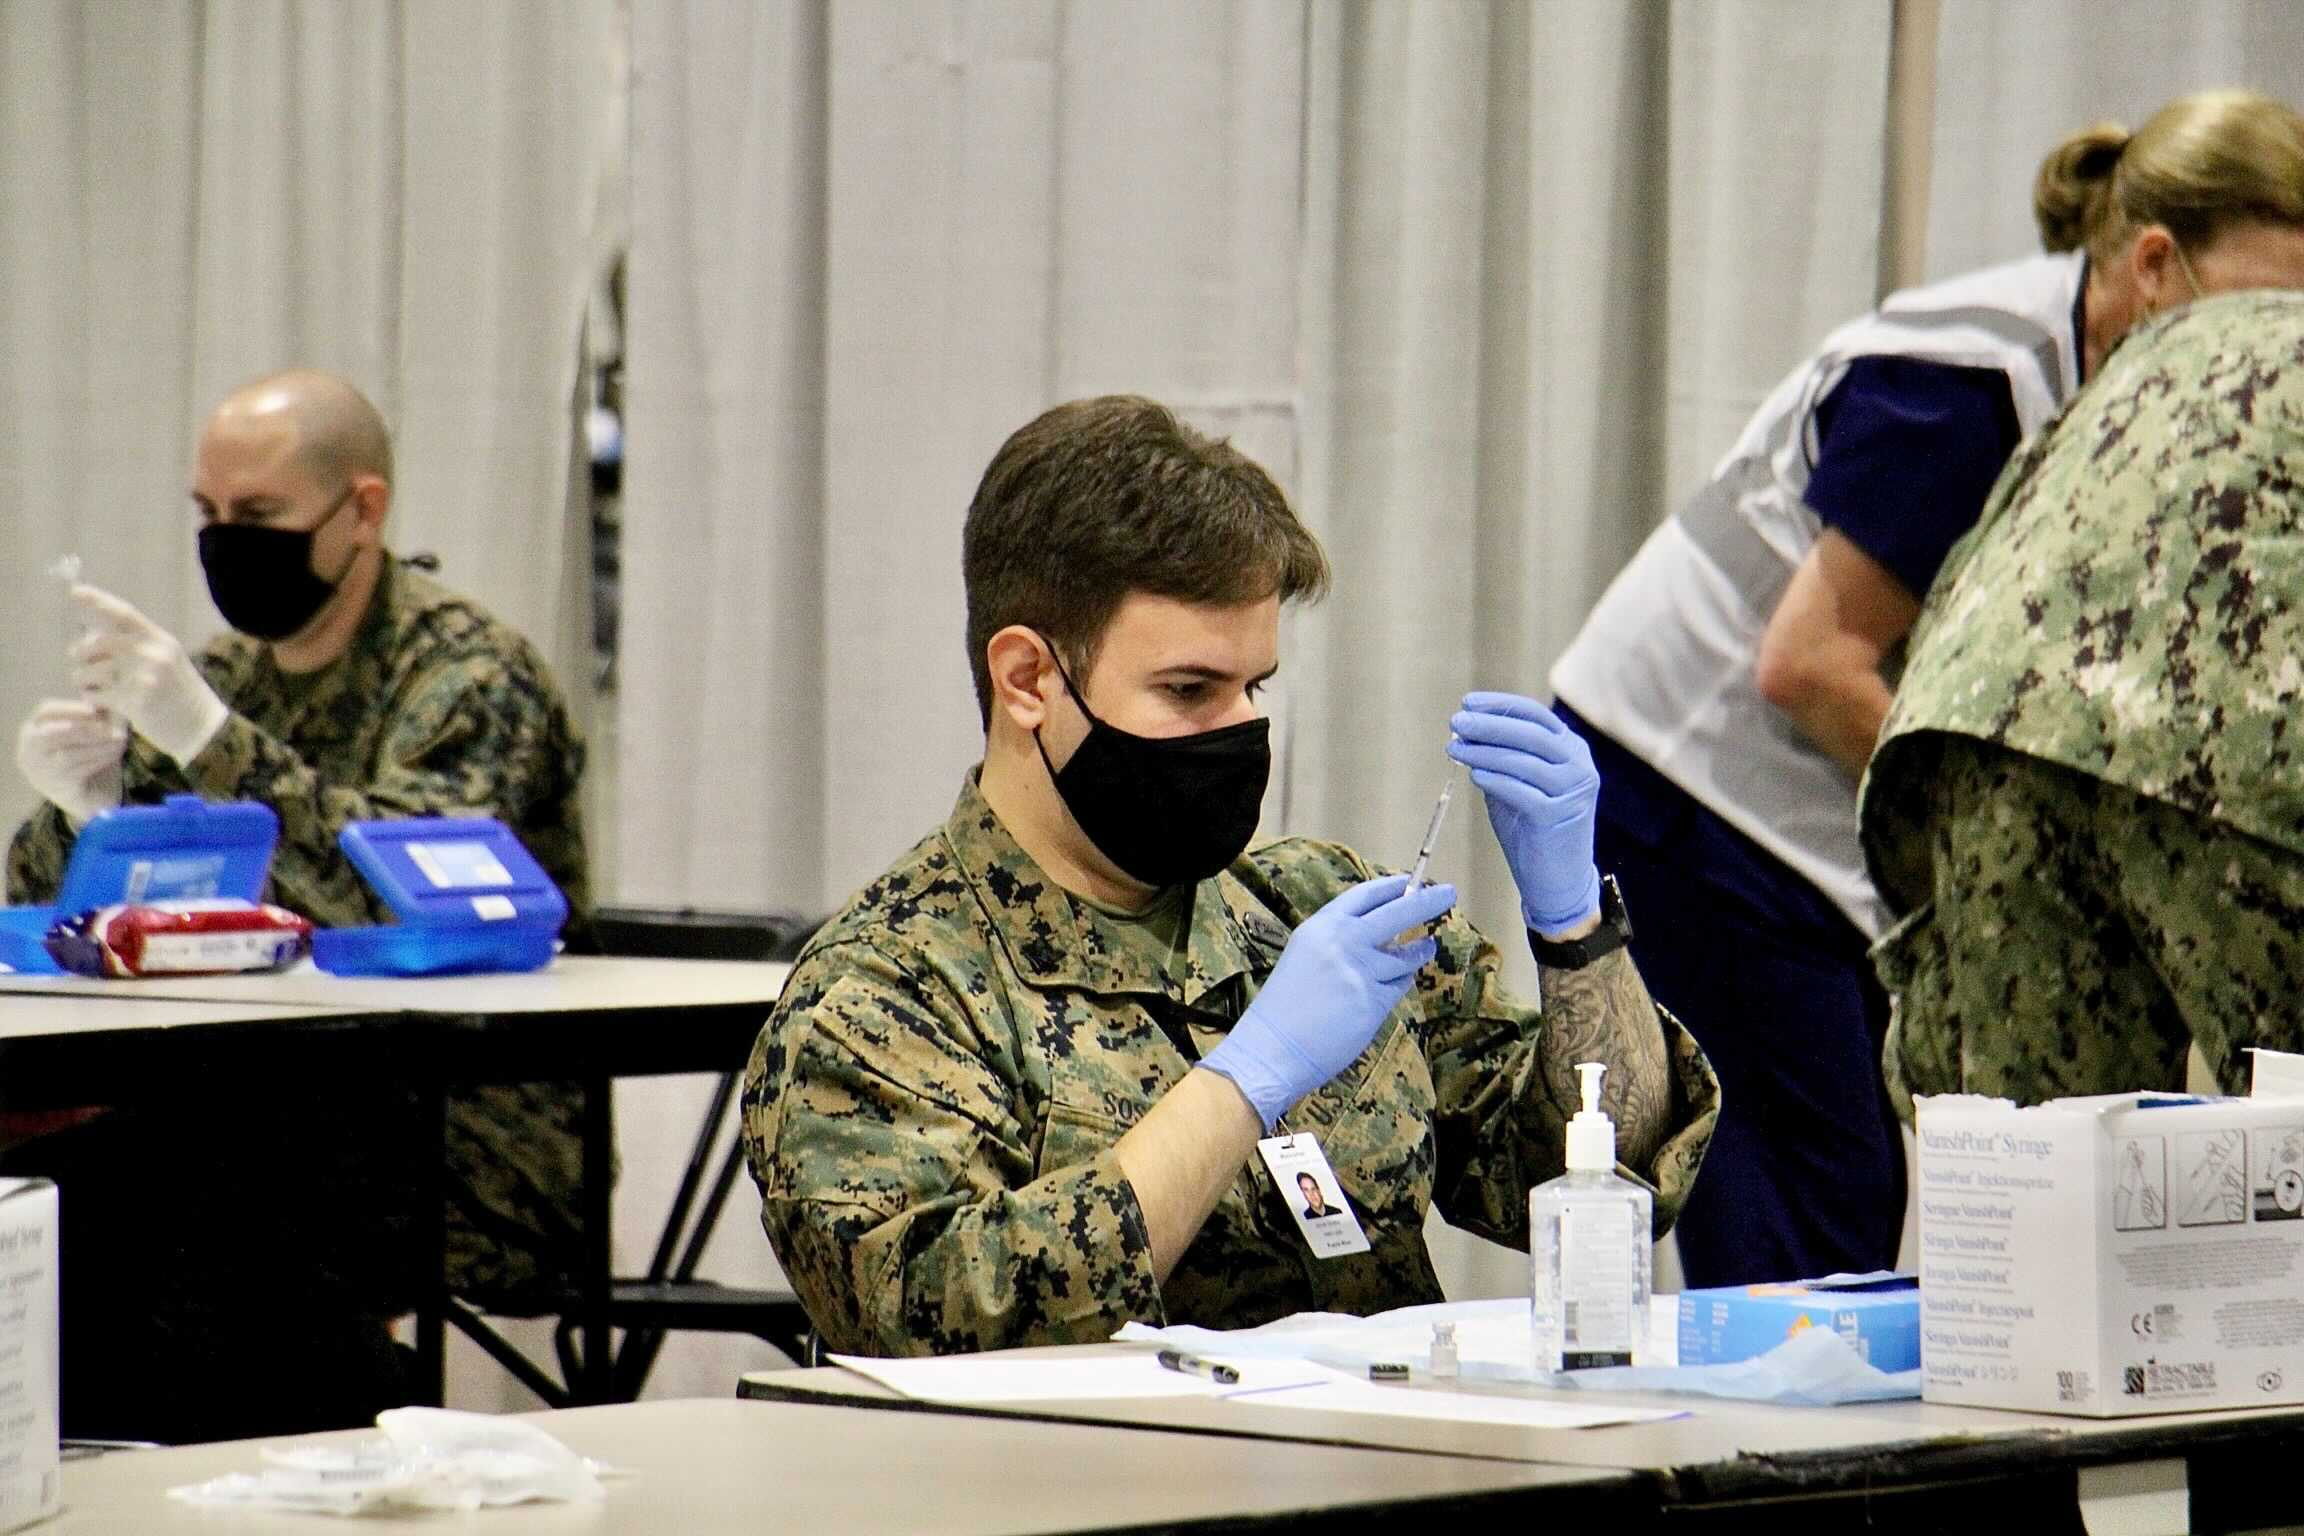 National Guard members fill syringes at the federally-run COVID-19 vaccination site